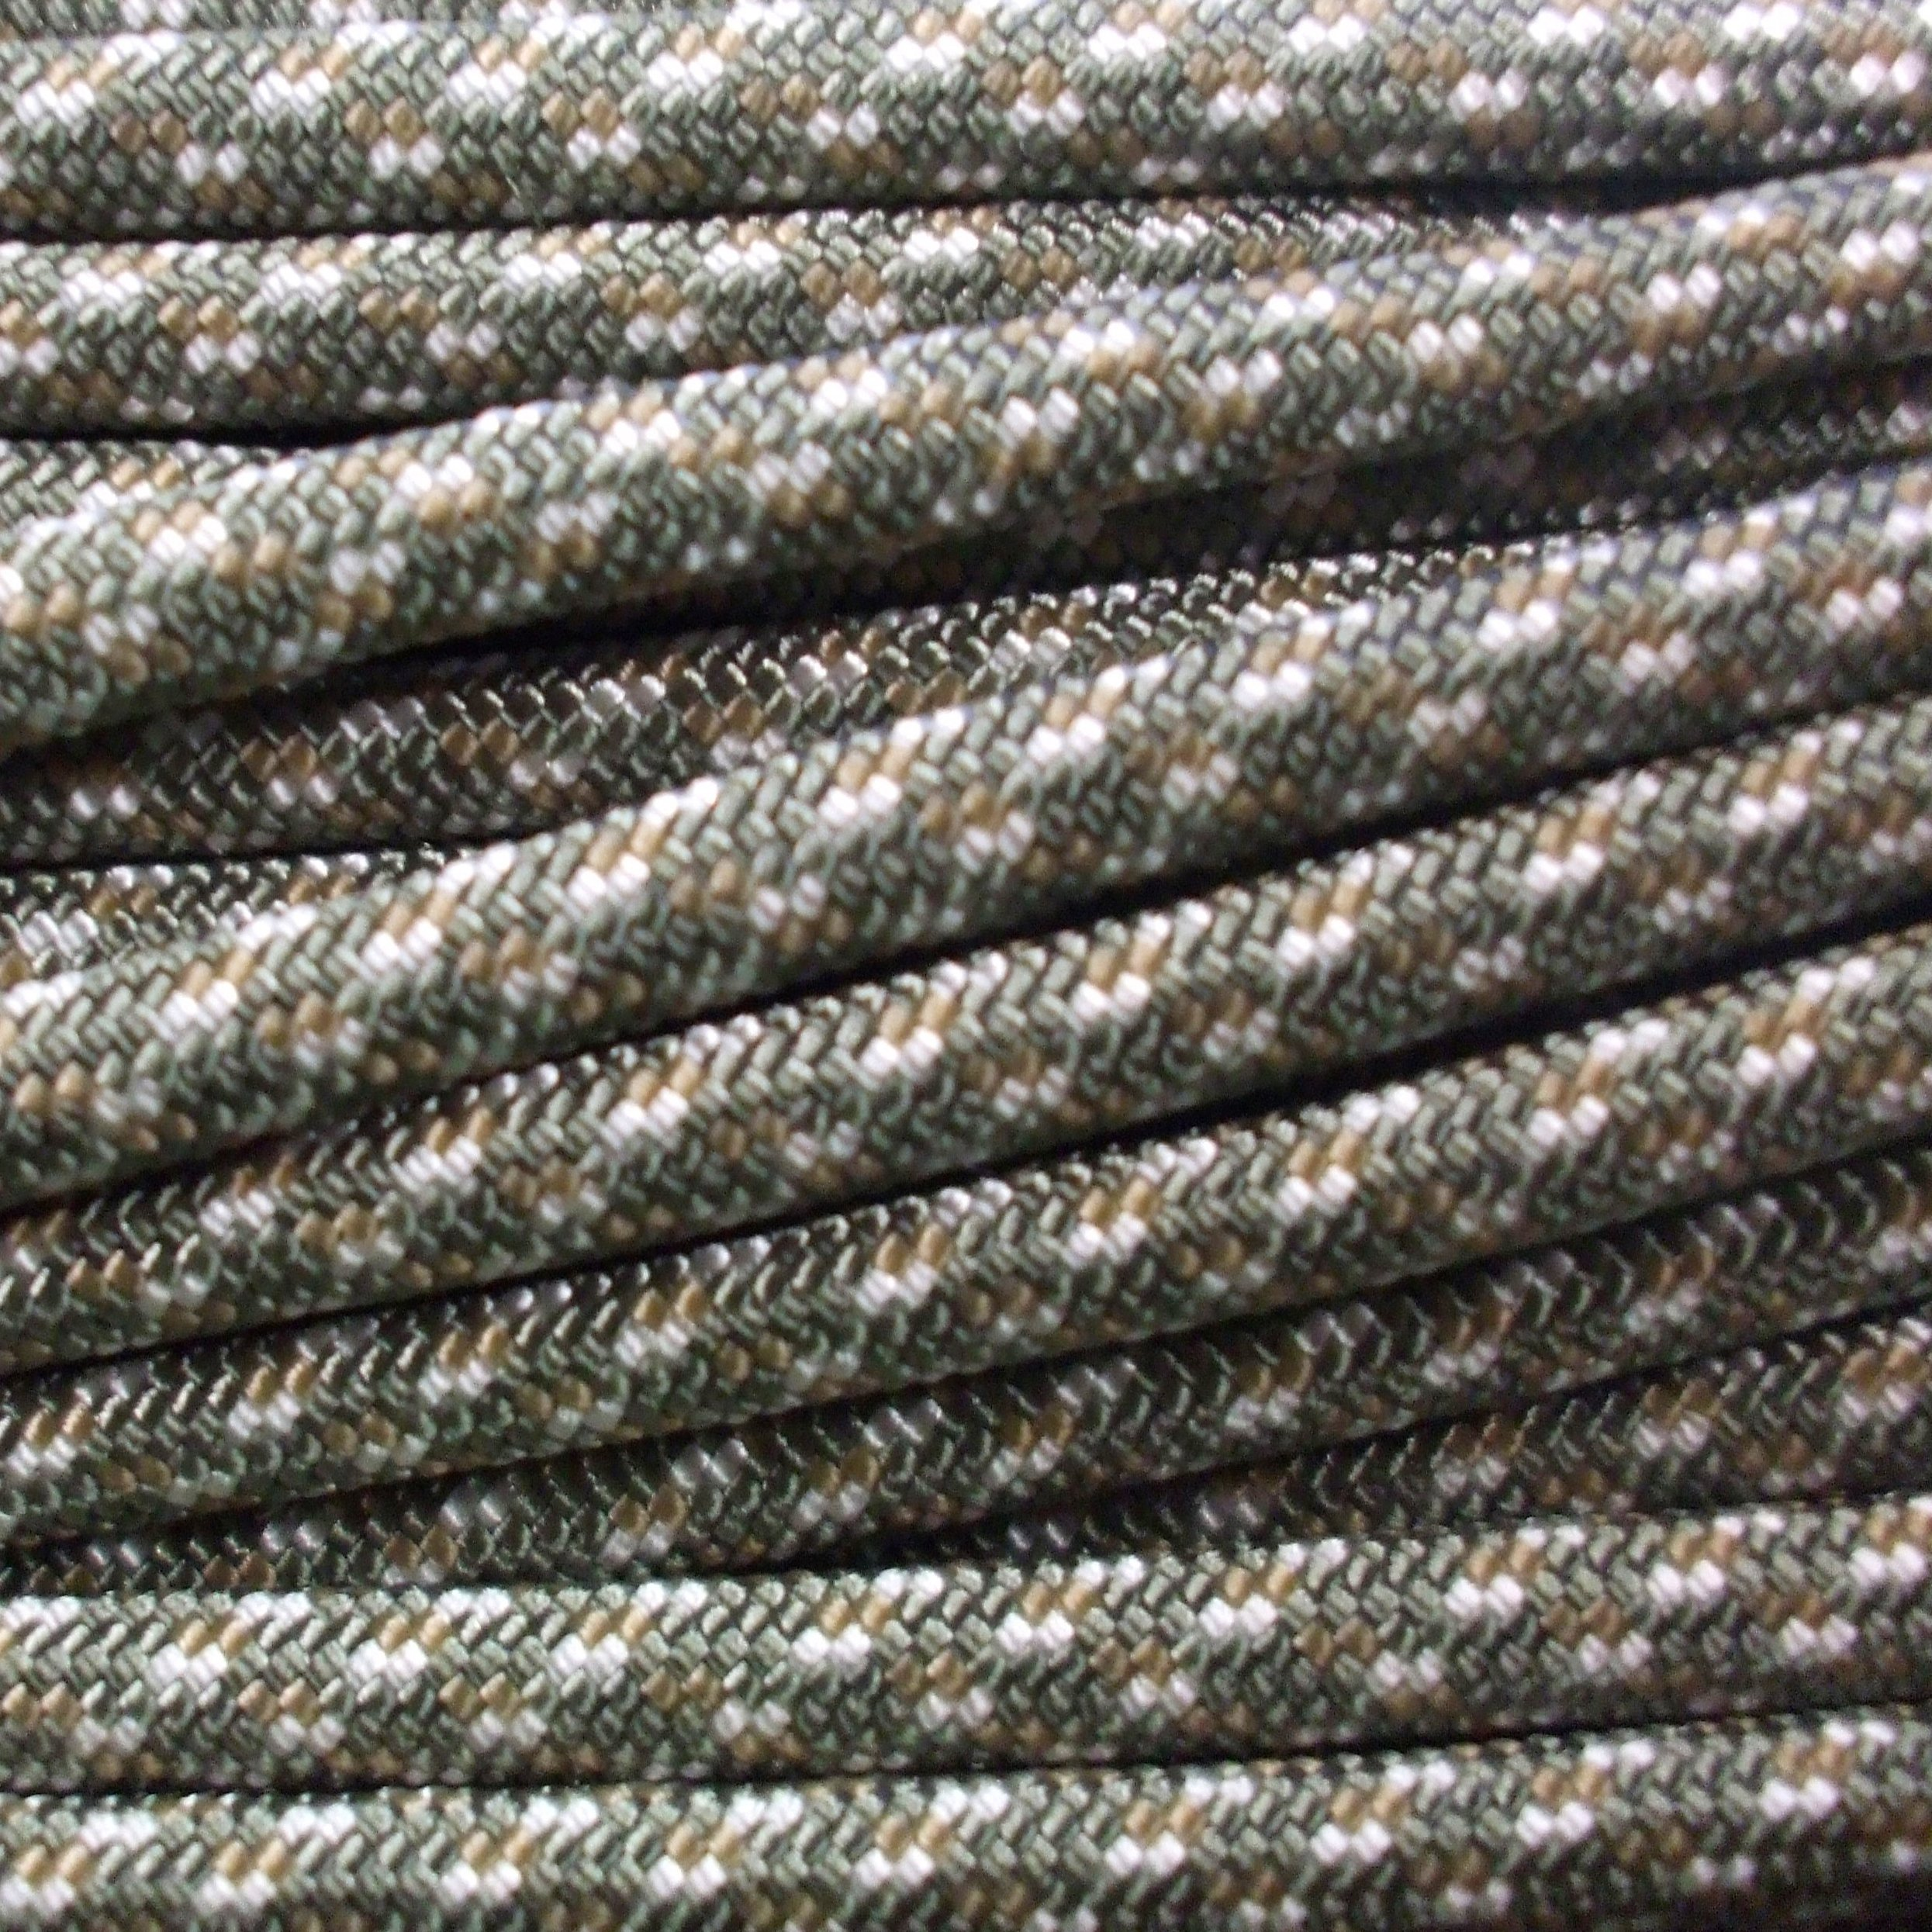 Army Universe ACU Camouflage 550LB Military Nylon Paracord Rope 100 Feet by Army Universe (Image #3)